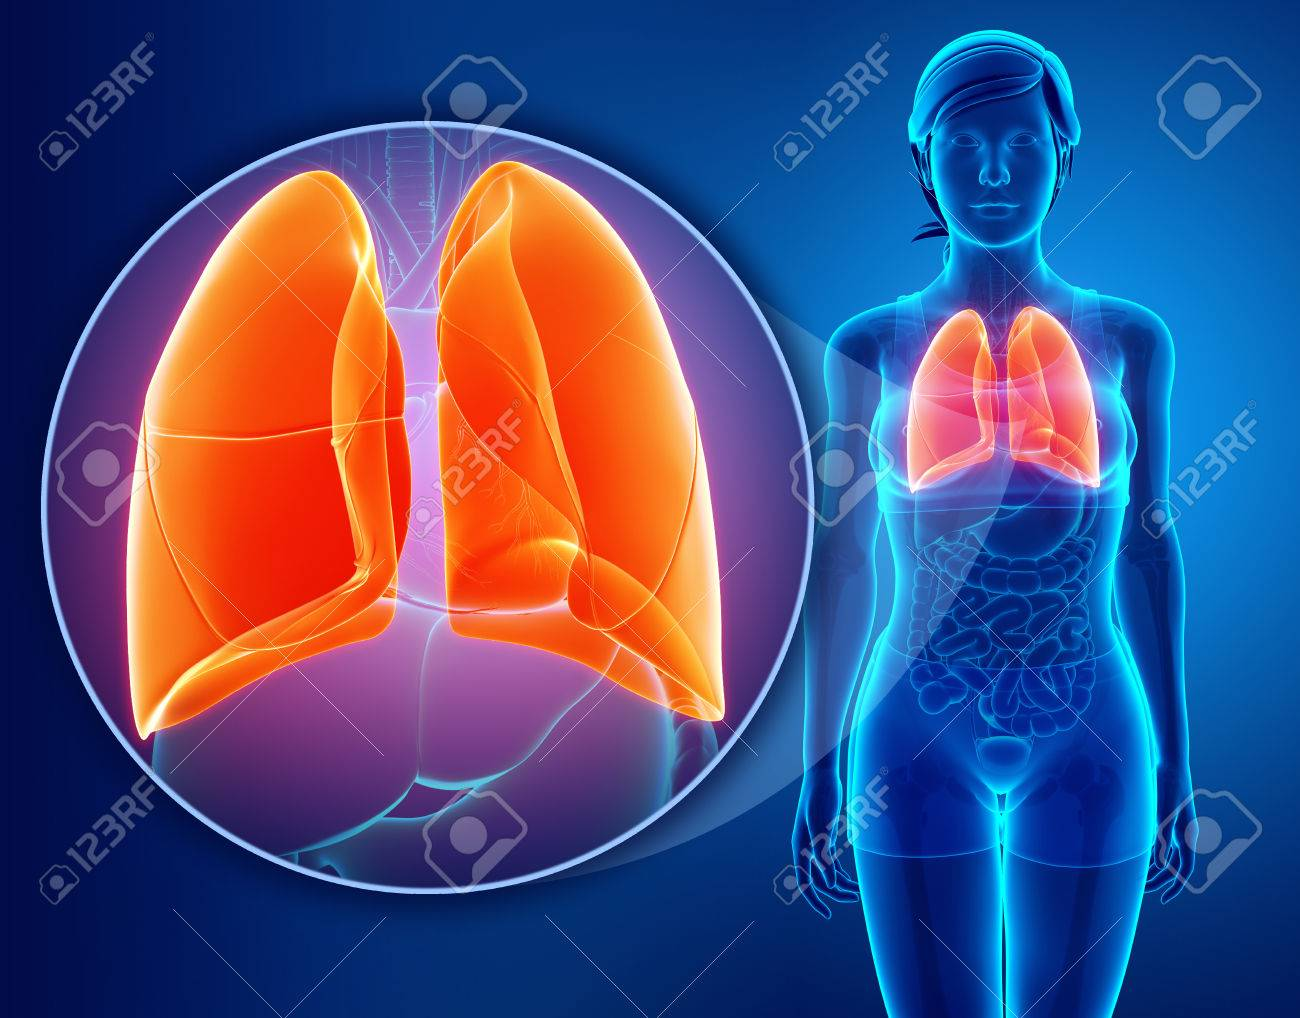 Anatomy Of Human Respiratory System With Lungs Stock Photo Picture